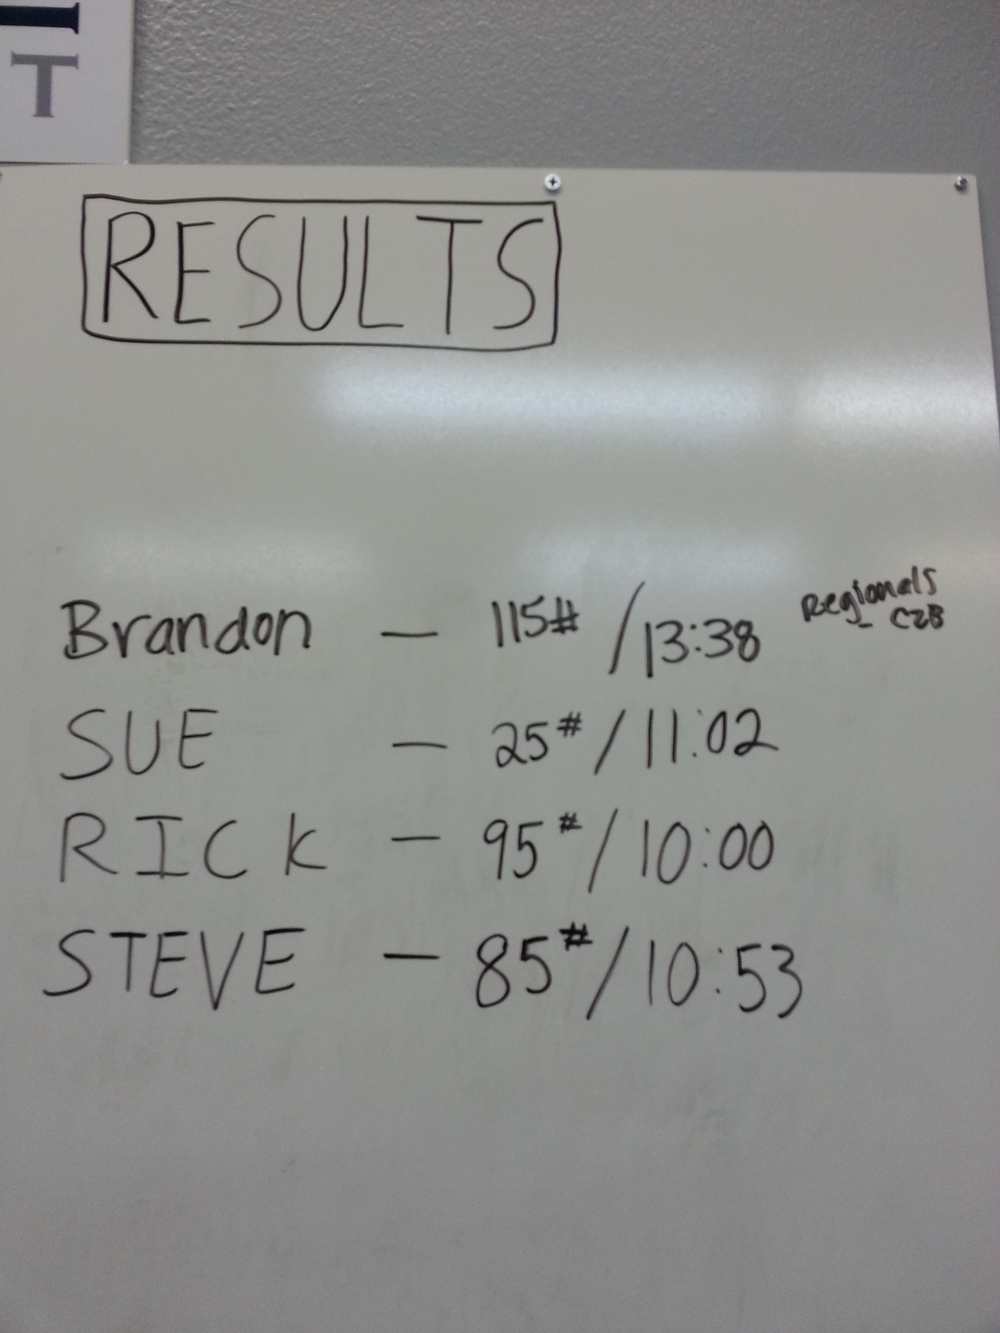 Results from 6/13